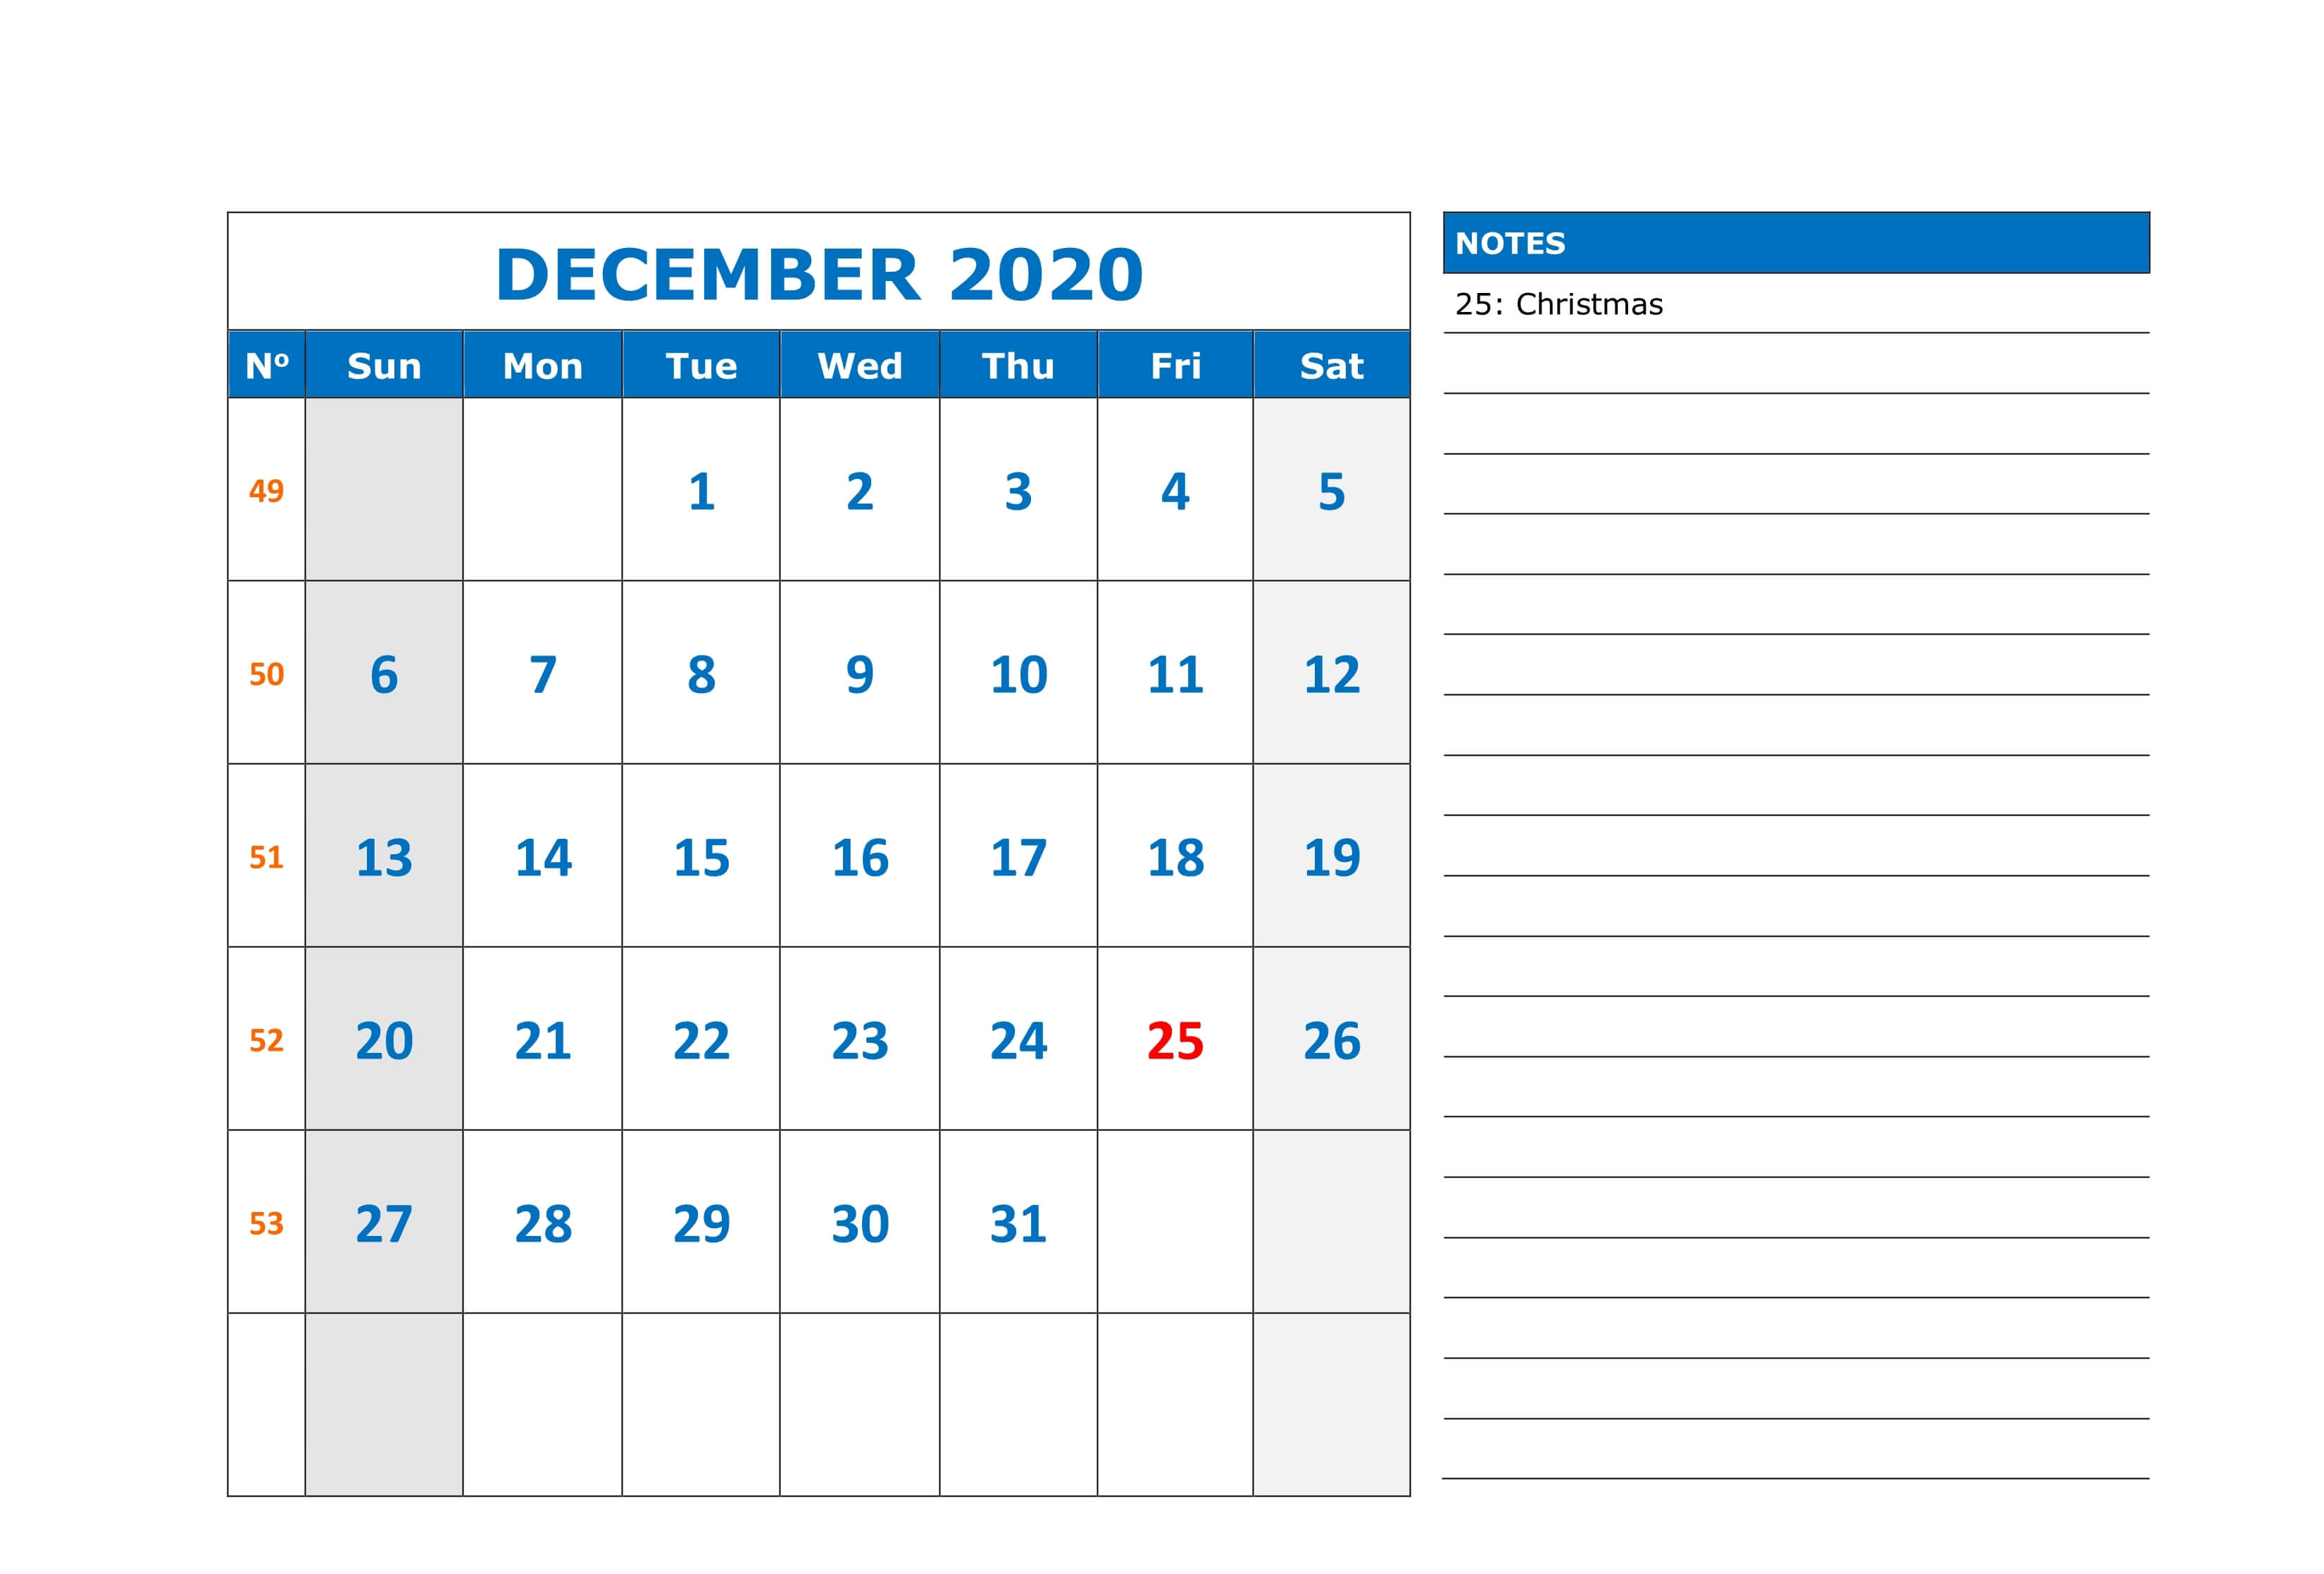 Print December 2020 Blank Calendar Page with Notes